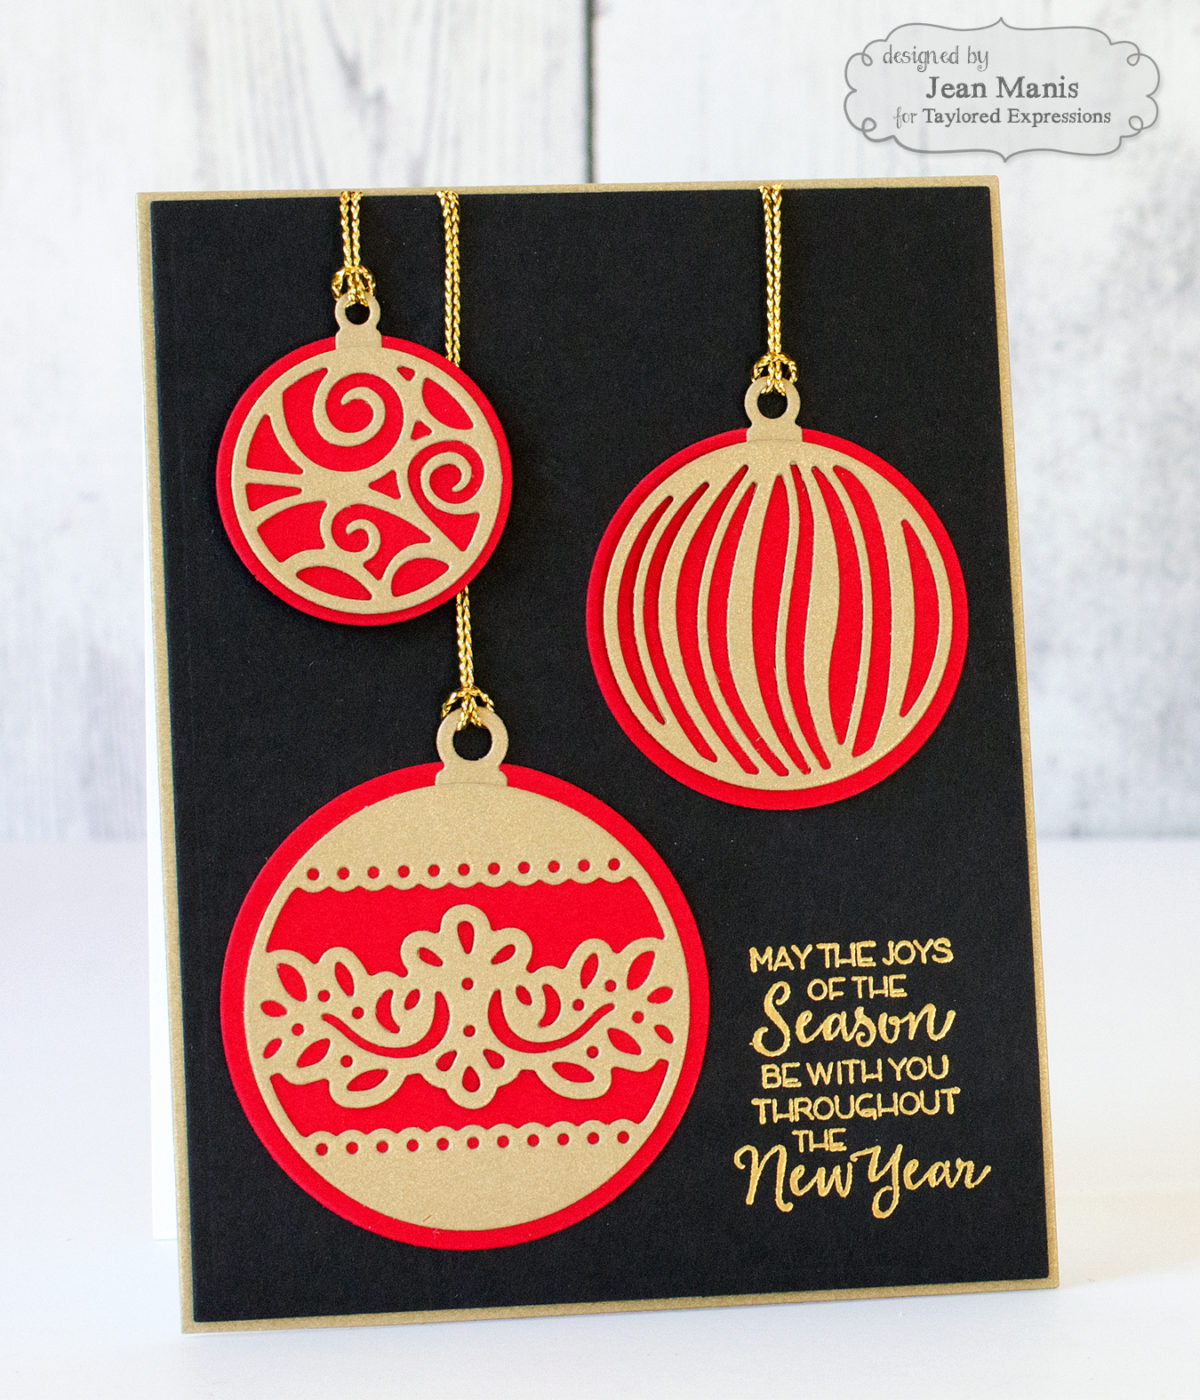 TE Christmas Ornaments – One Design, Two Versions